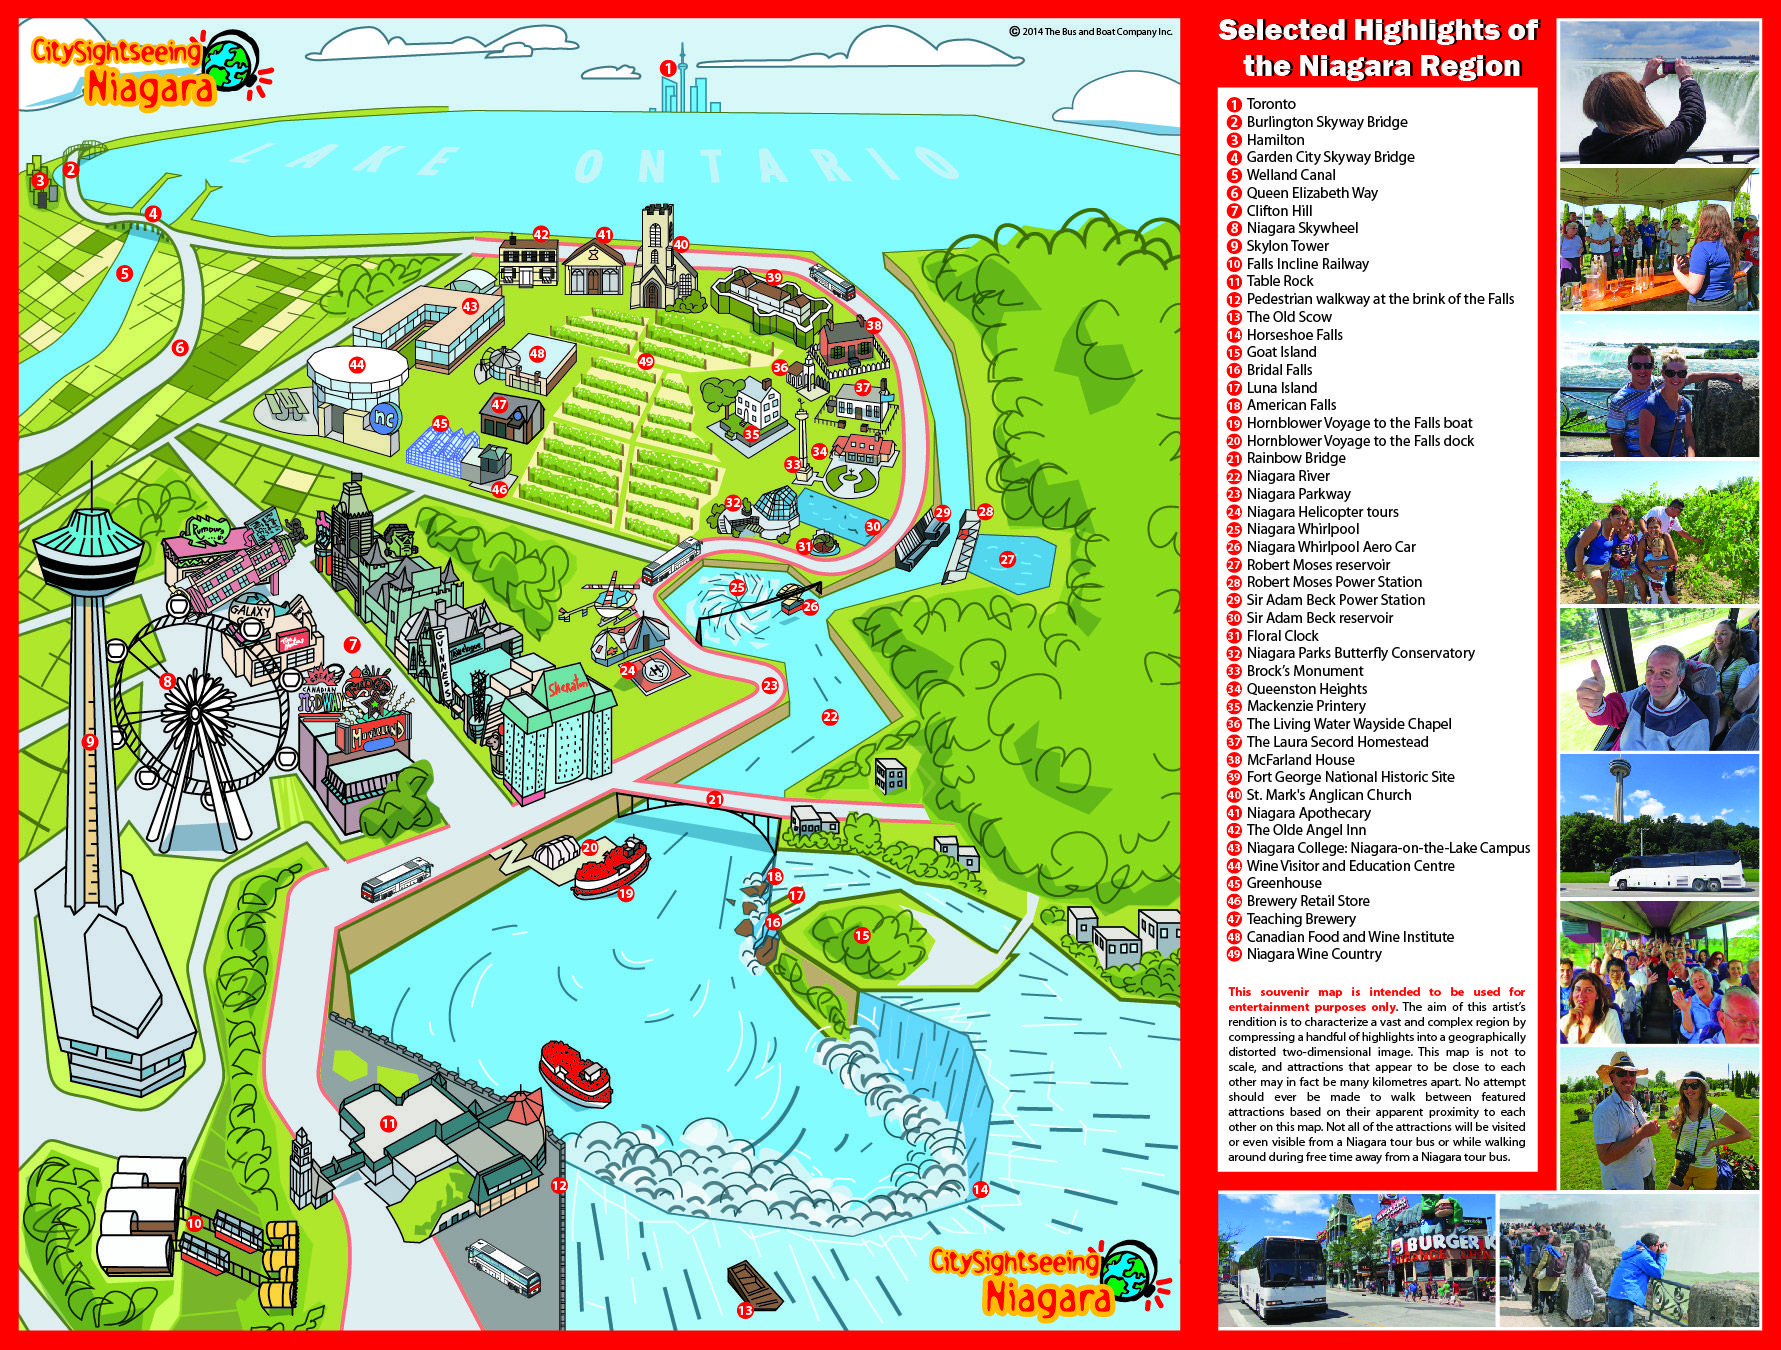 Map Of Attractions In Niagara Falls Canada Niagara Falls Day Tour Map | City Sightseeing Toronto | Niagara